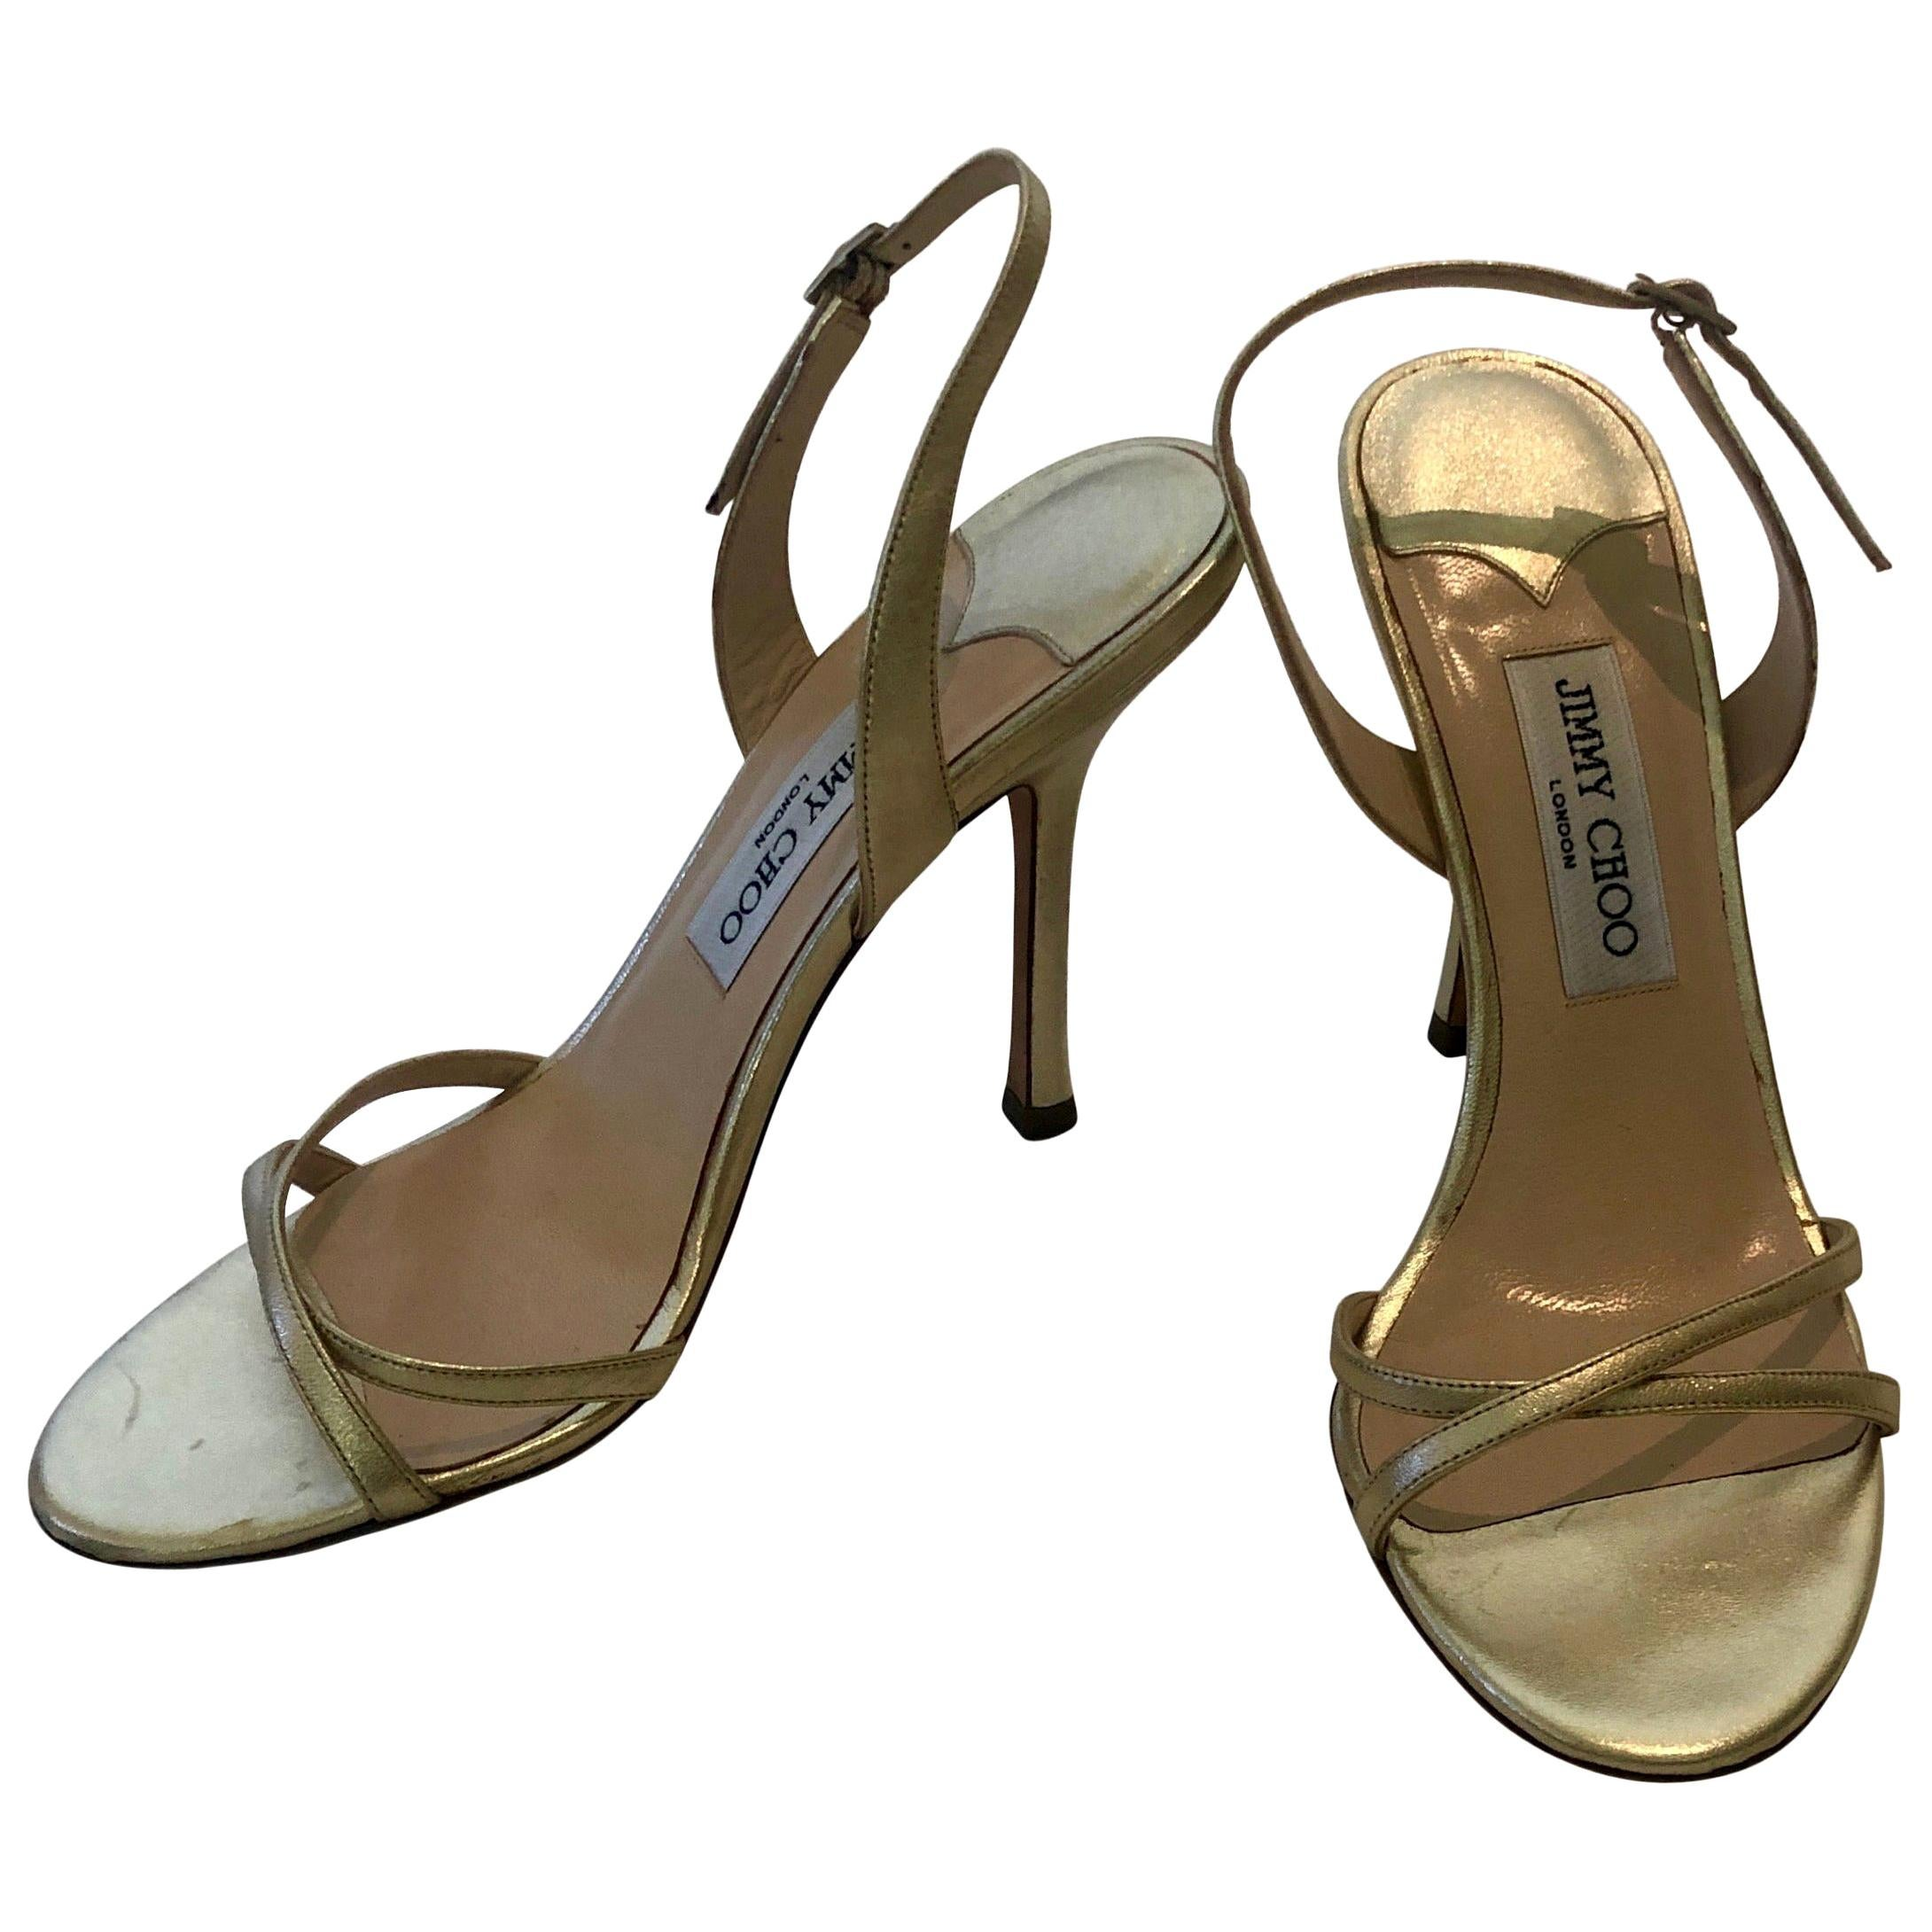 Pair of Jimmy Choo Lance Strappy Metallic Gold Stiletto Leather Sandal